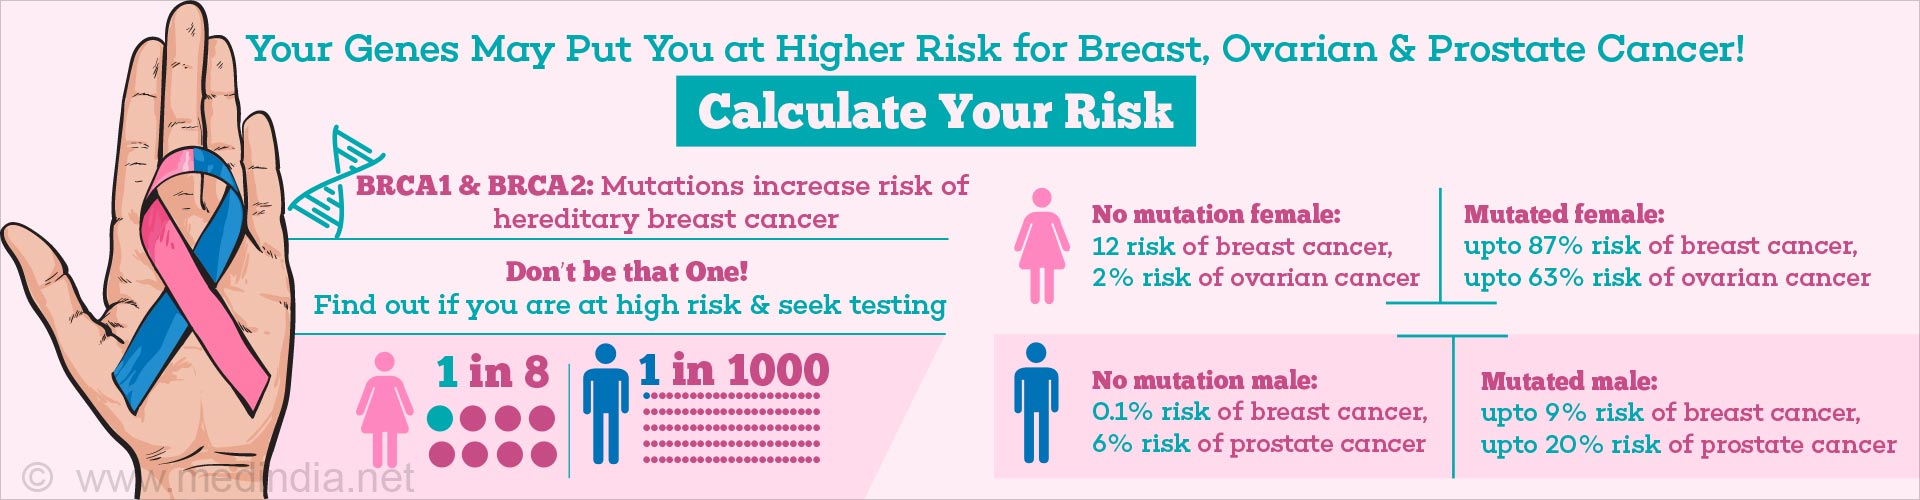 your genes may put you at higher risk for breast, ovarian & prostate cancer! calculate your risk